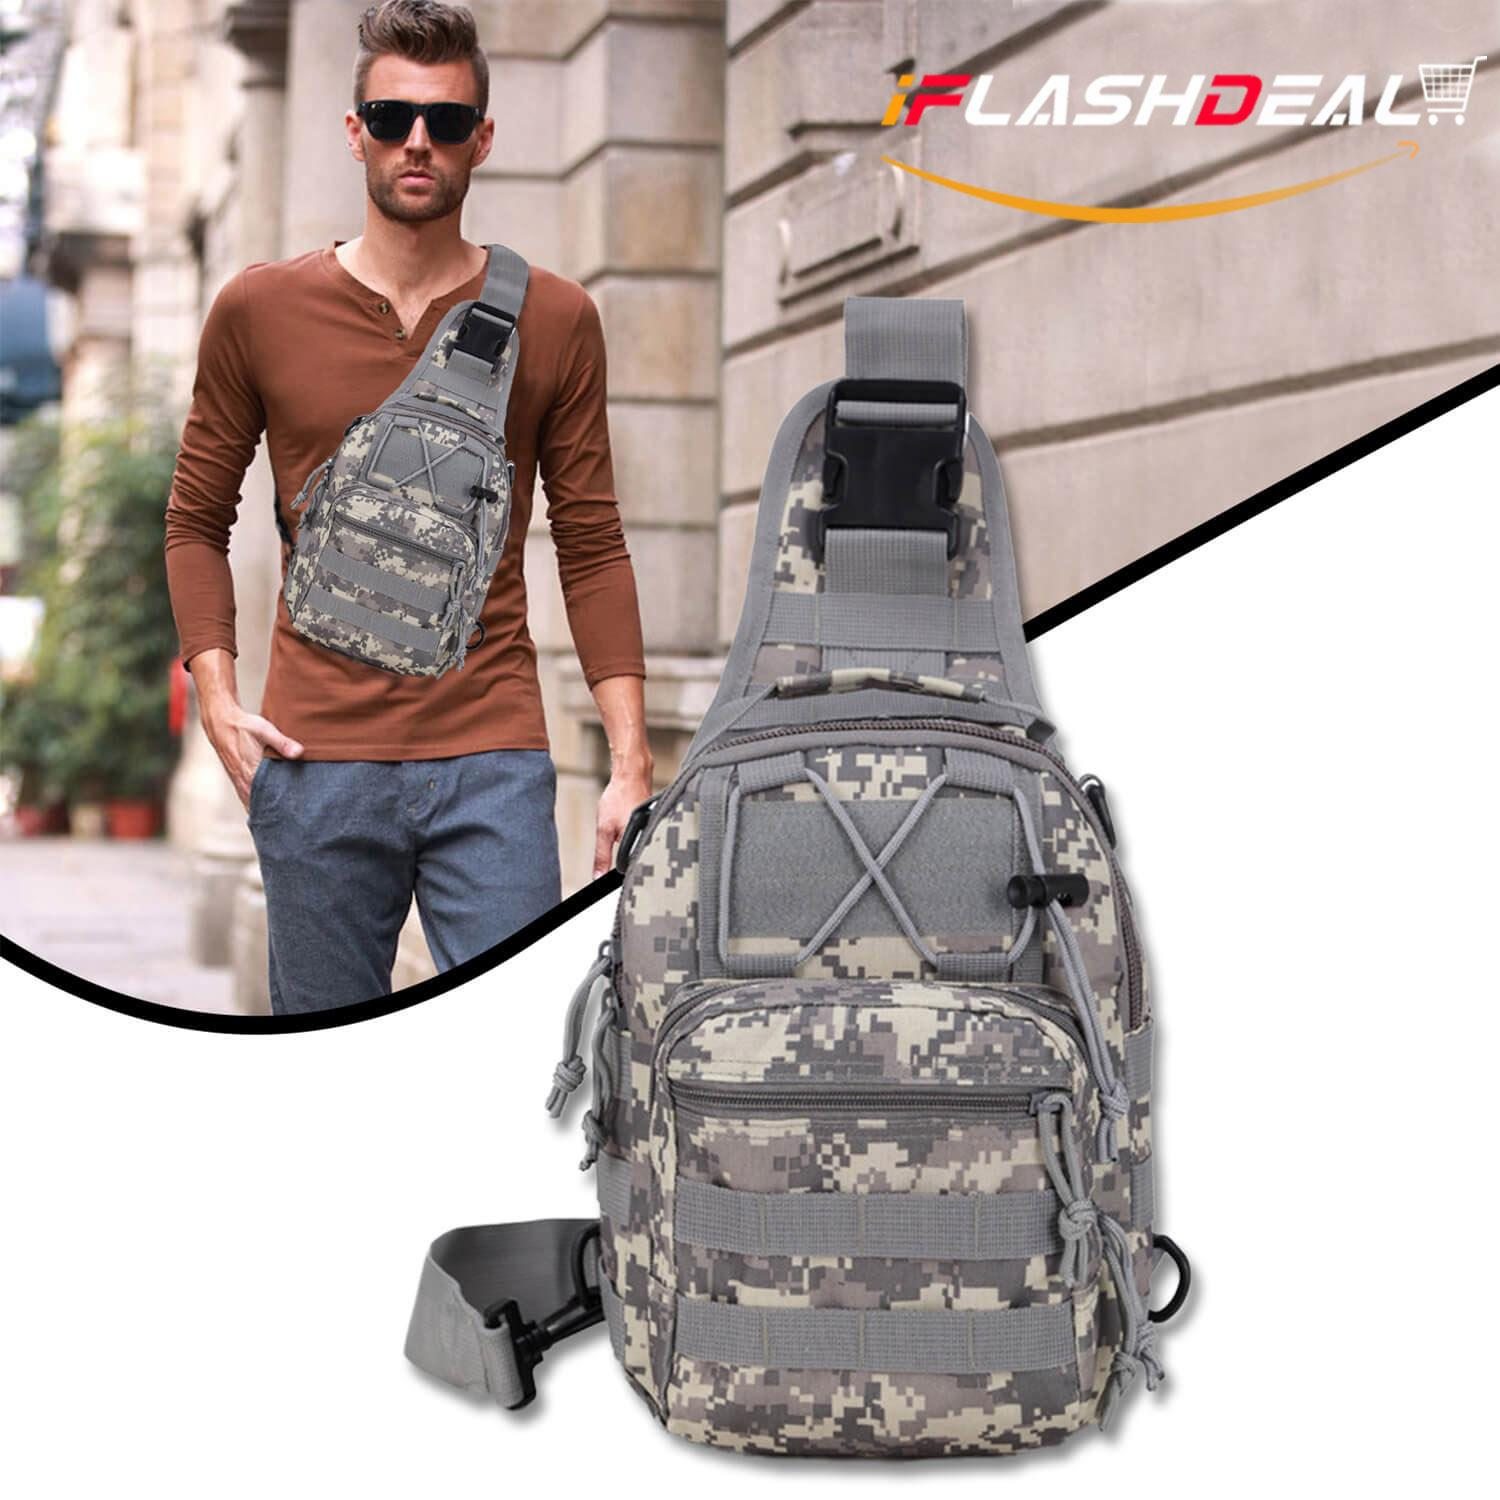 iFlashDeal Tactical Sling Bag Men Crossbody Bas Outdoor Chest Pack Shoulder Backpack Military Sport Cross Body Bag for Trekking, Camping, Hiking, Rover Sling Daypack for Men Women